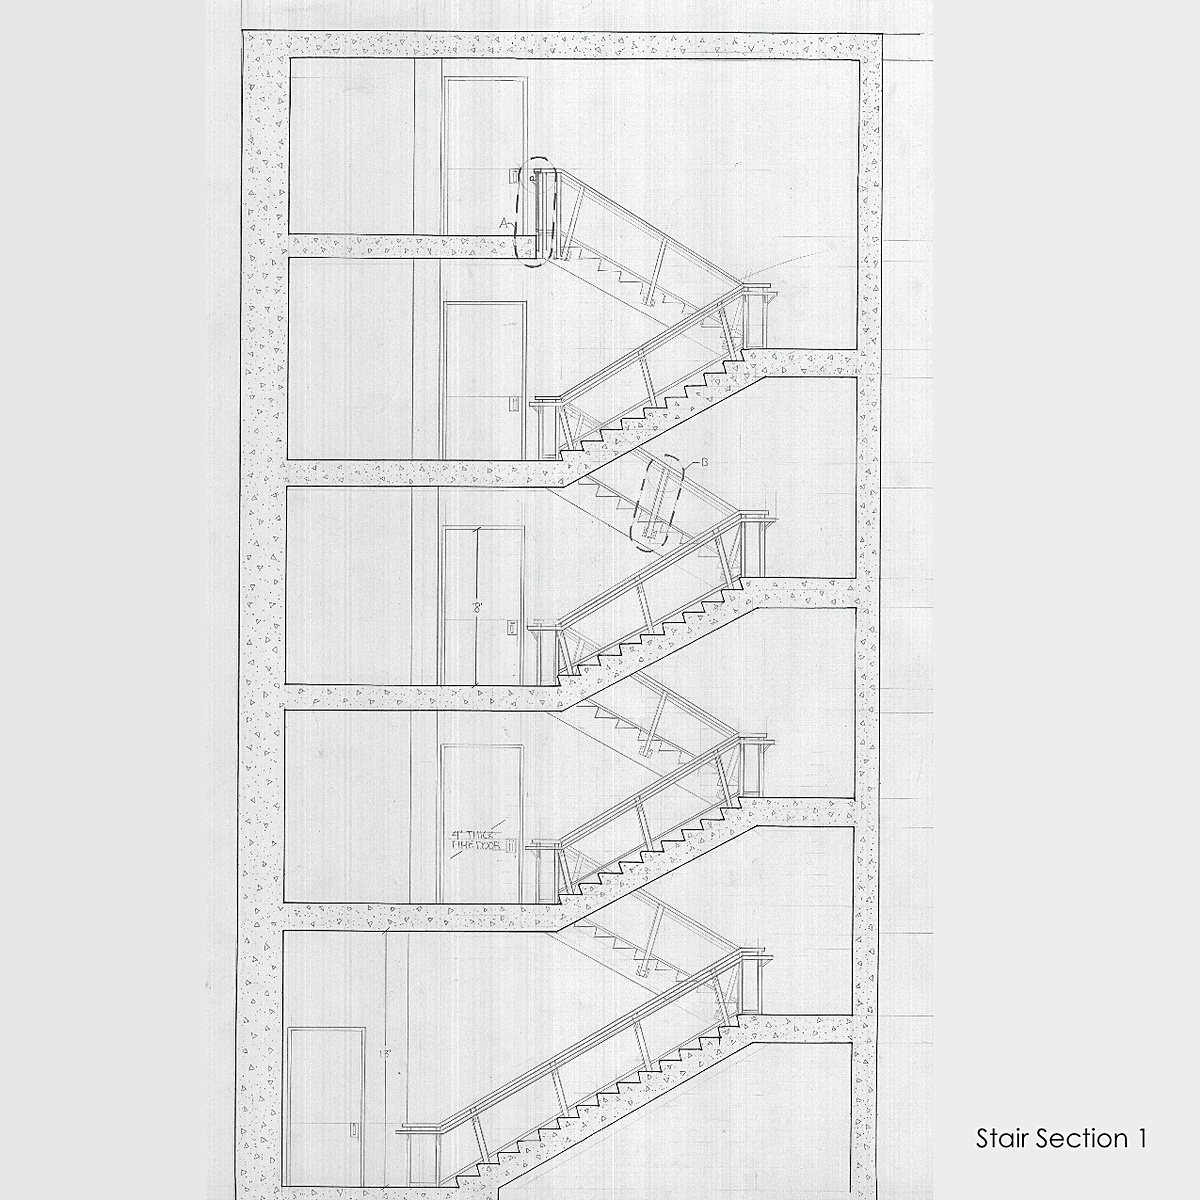 Staircase Section